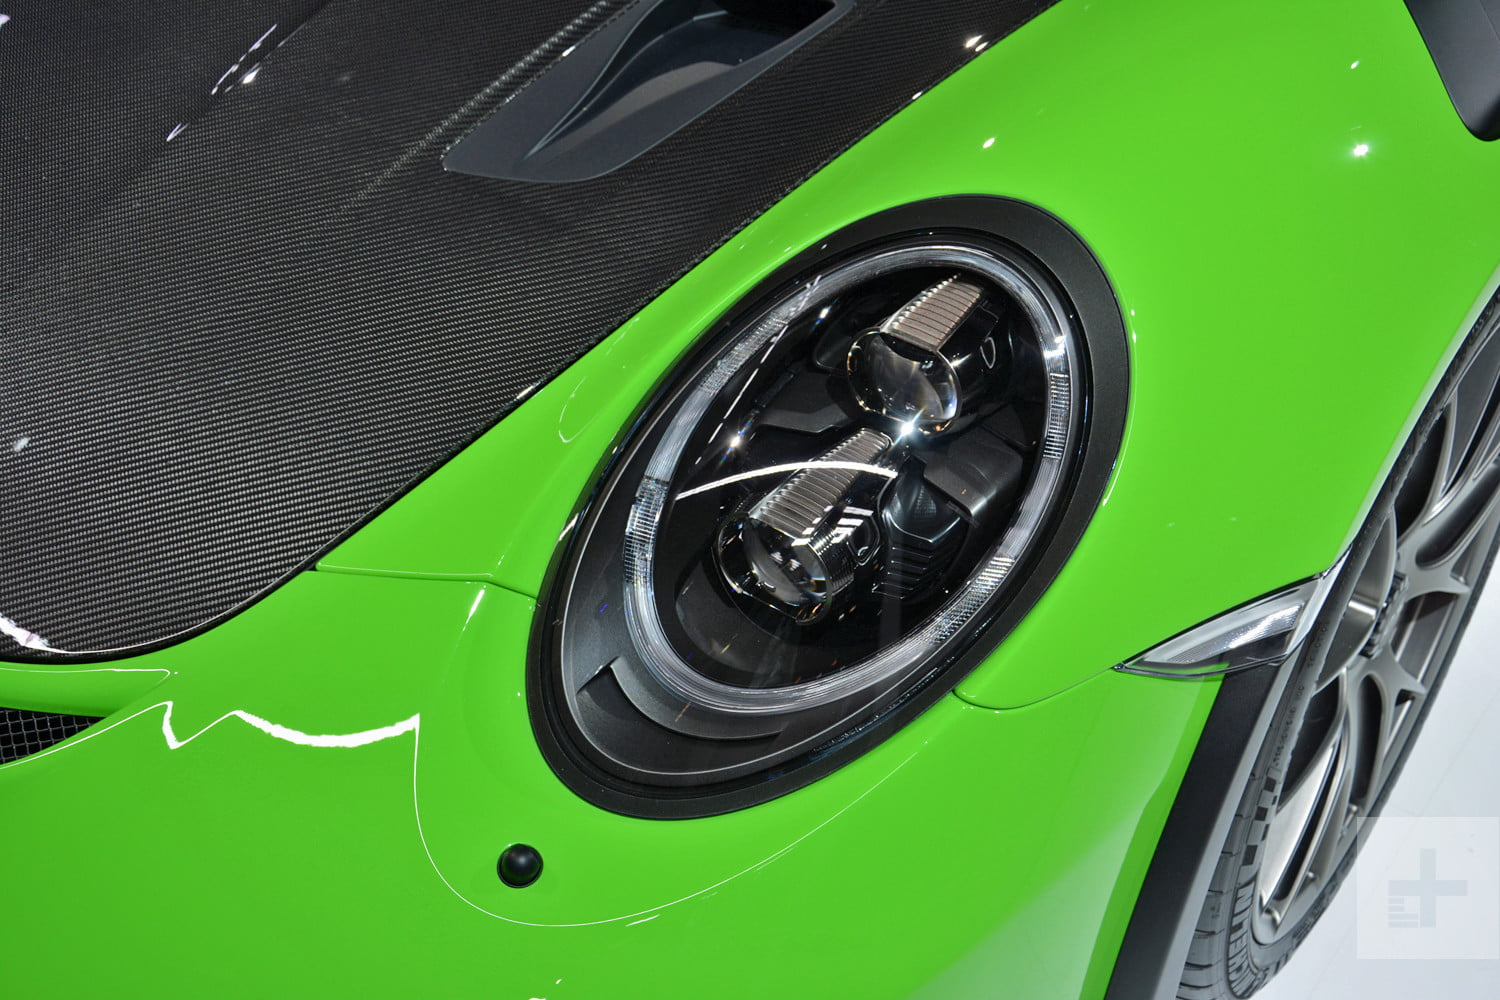 porsche insight into the 911 gt3 rs weissach package dt new york 2018 7